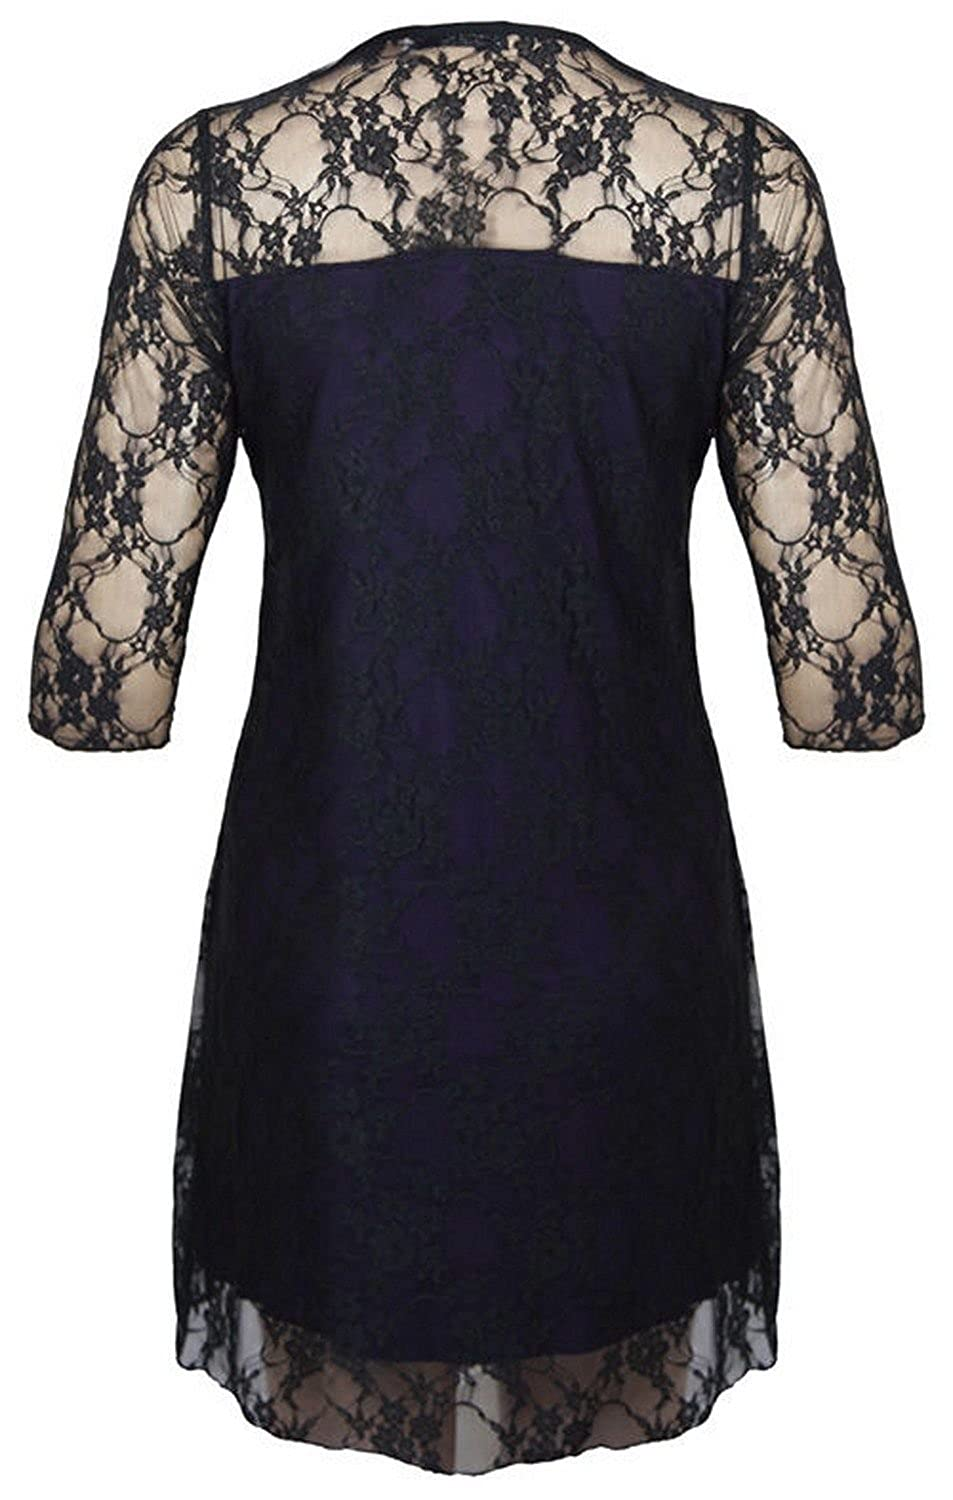 Women Plus Size Short Sleeve Top Womens Stretch Fit Lace Floral ...